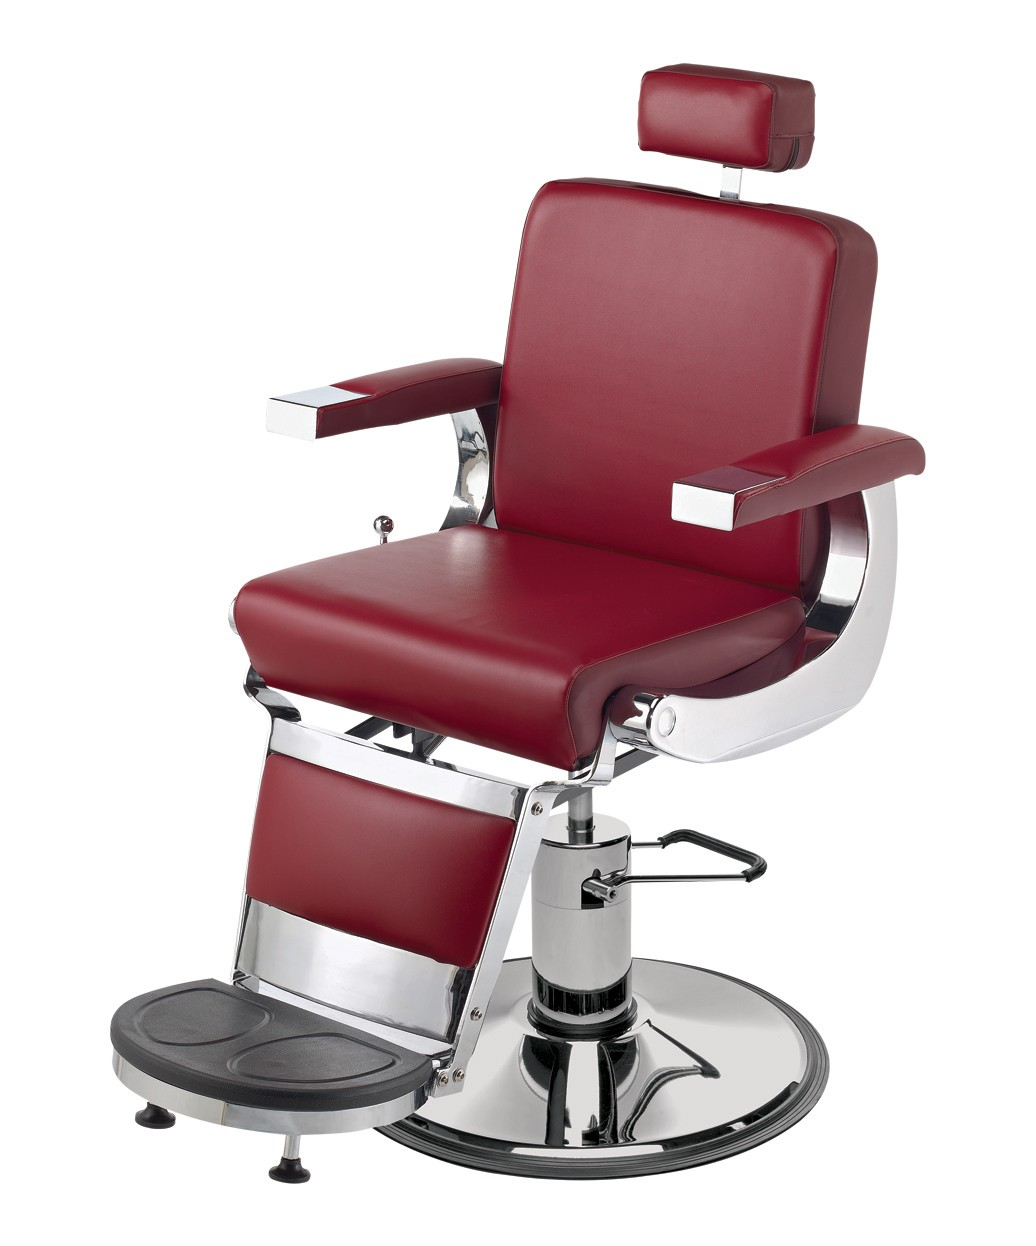 Chair Price Pibbs 658 Barbiere Barber Chair